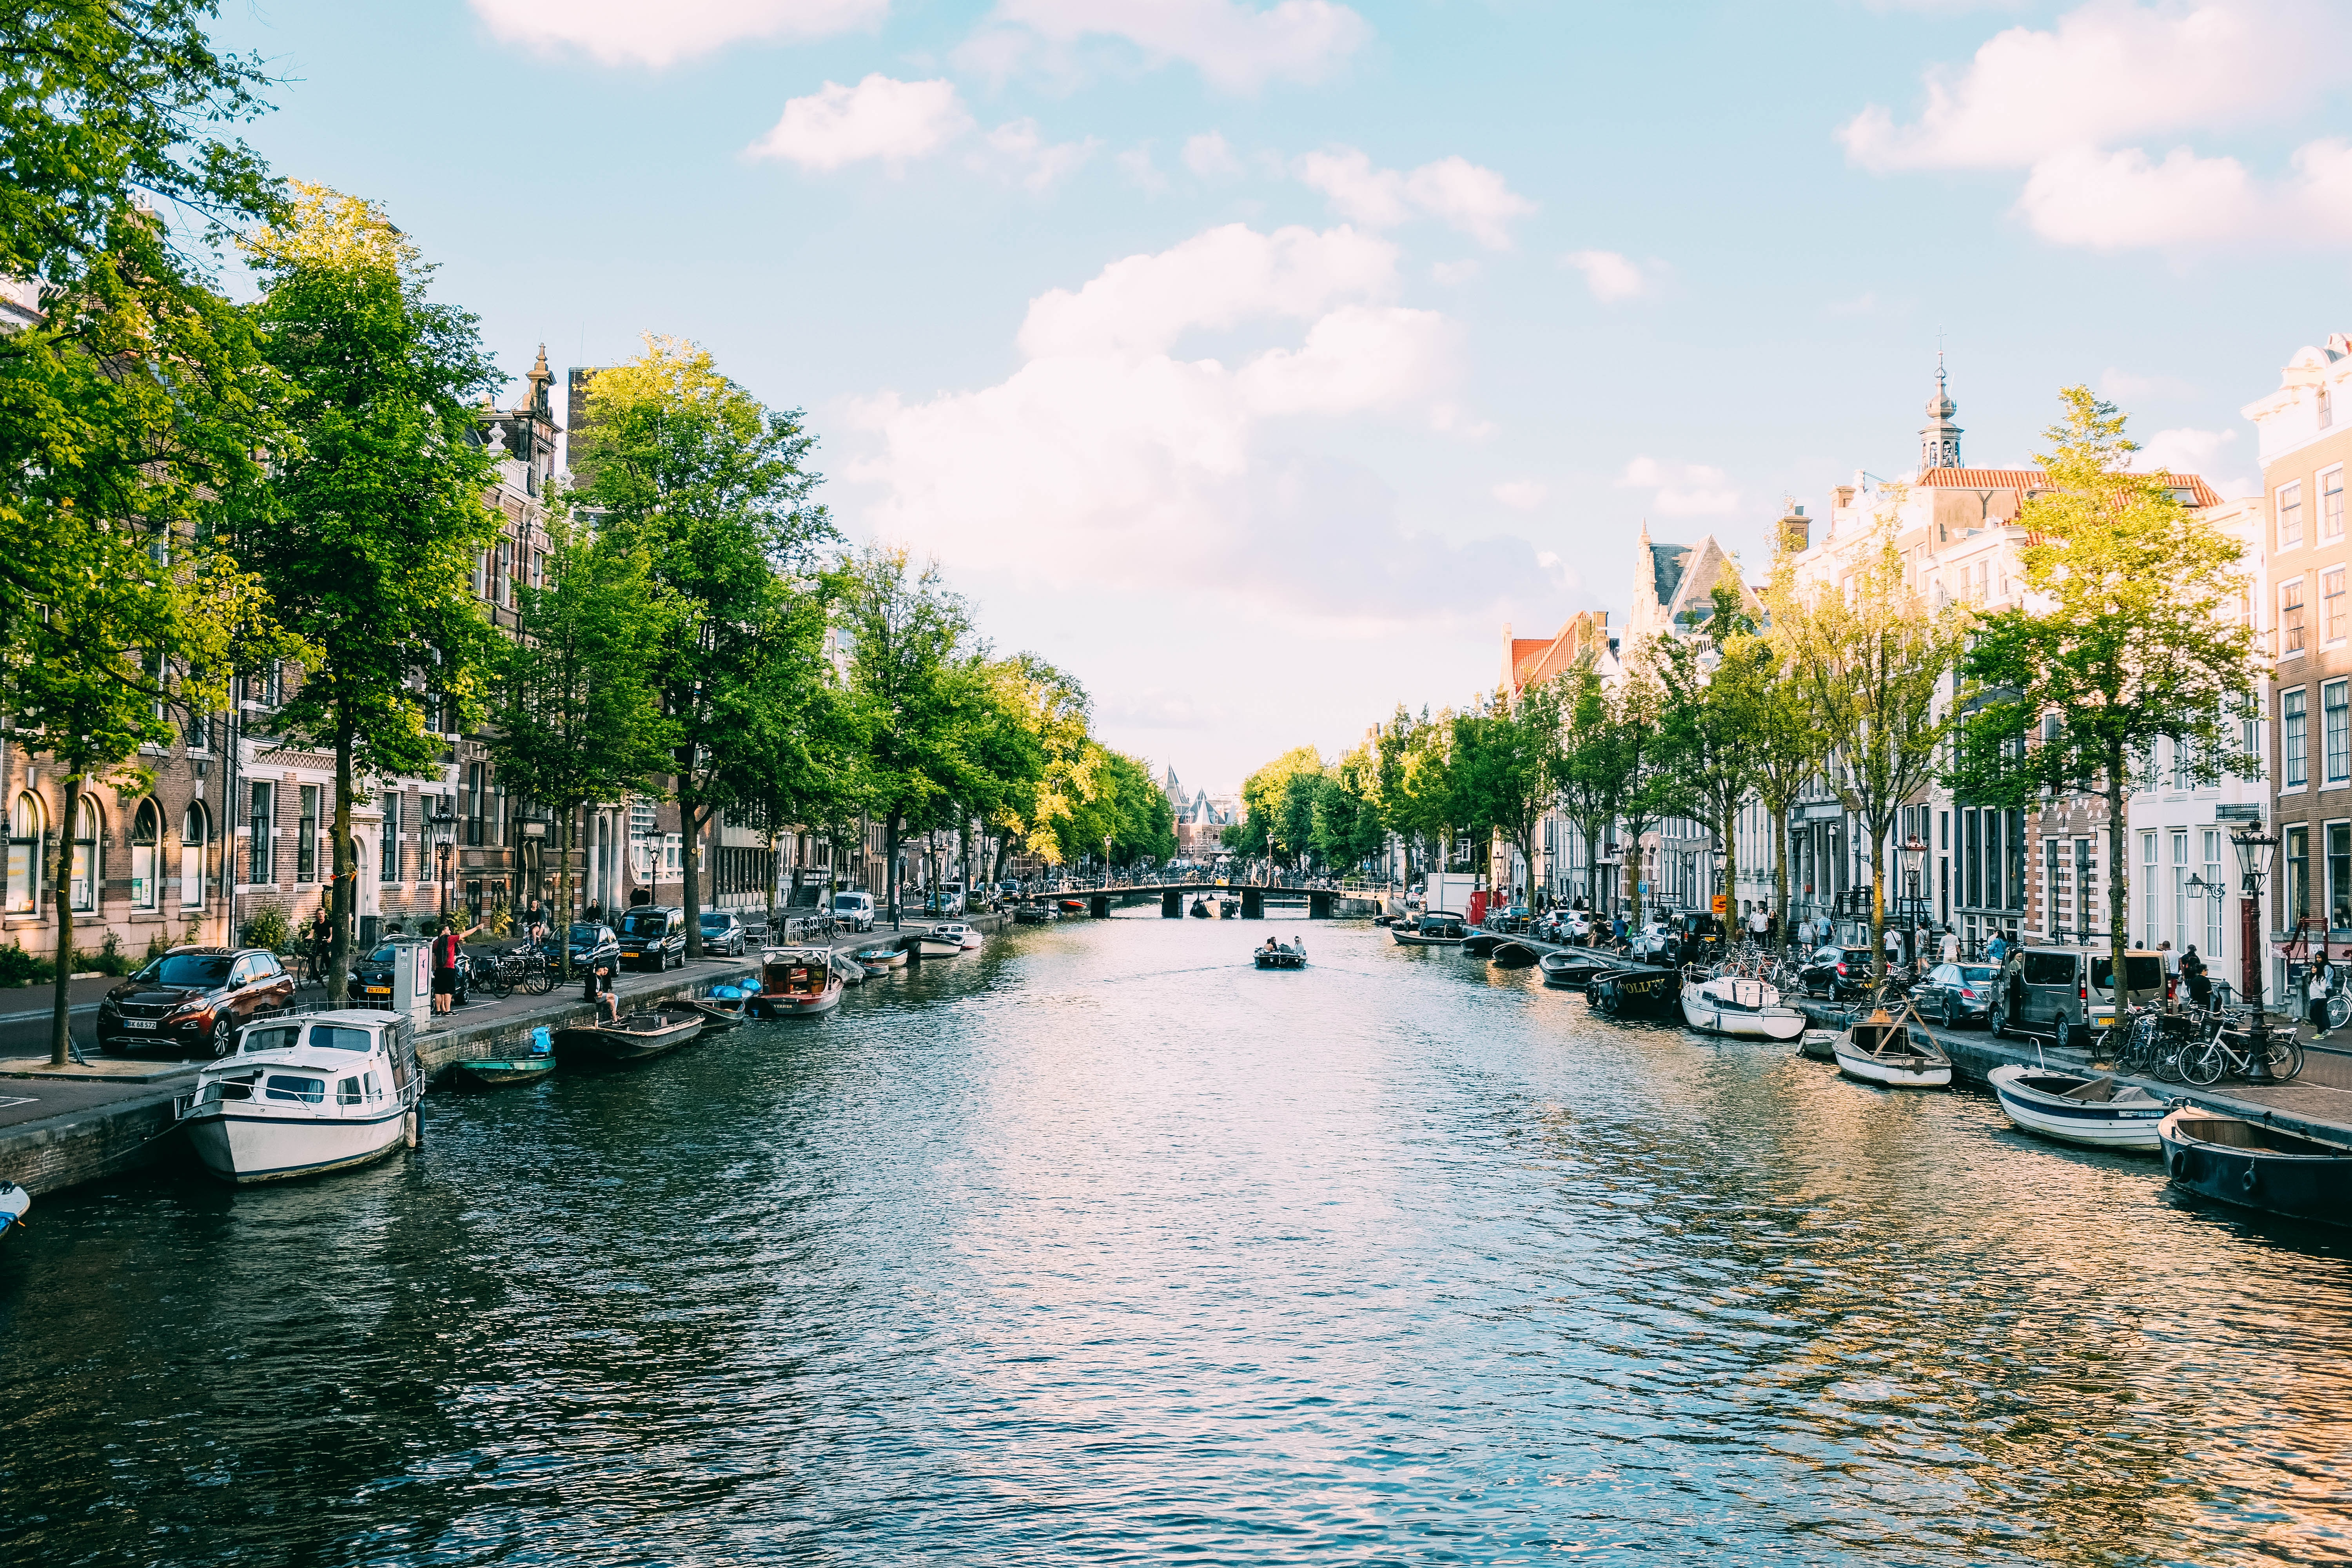 5 Things to Do in Netherlands